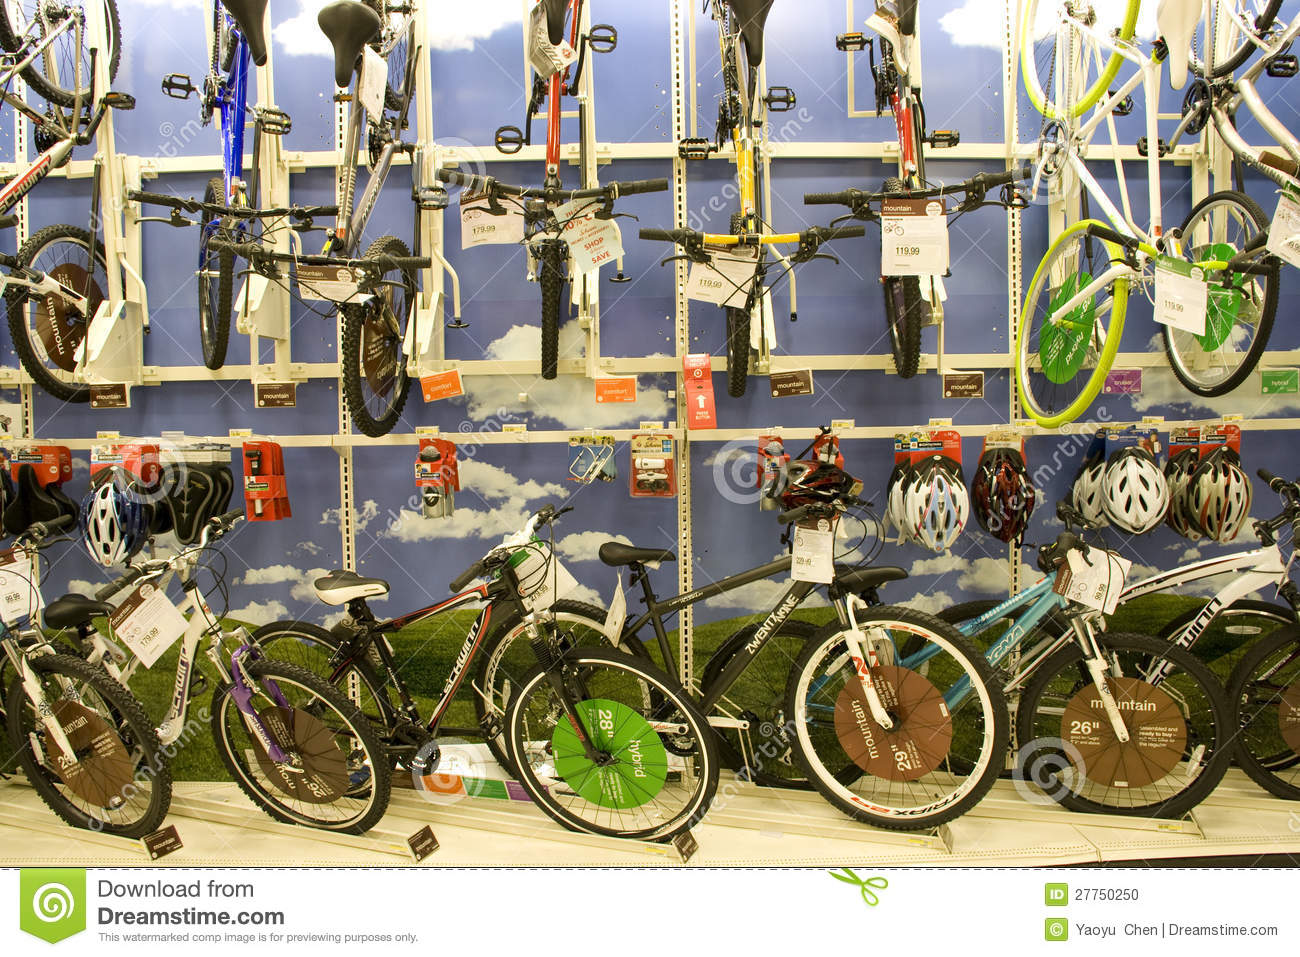 Target in store coupons for bikes